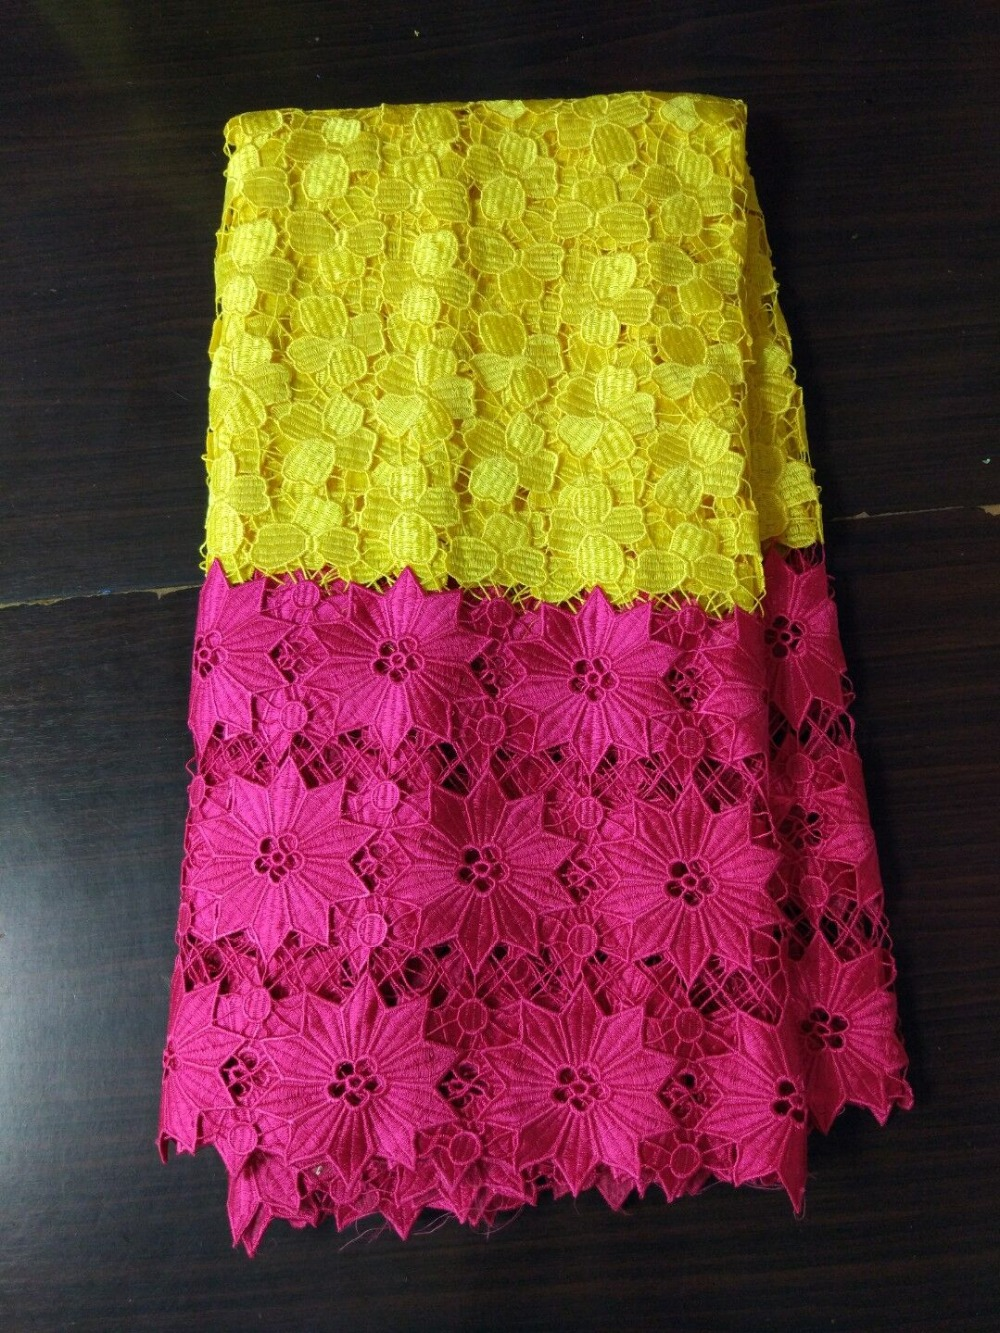 5Yards/pc New fashion yellow and fuchsia flower african water soluble lace embroidery french mesh cord lace for clothes BW124-65Yards/pc New fashion yellow and fuchsia flower african water soluble lace embroidery french mesh cord lace for clothes BW124-6